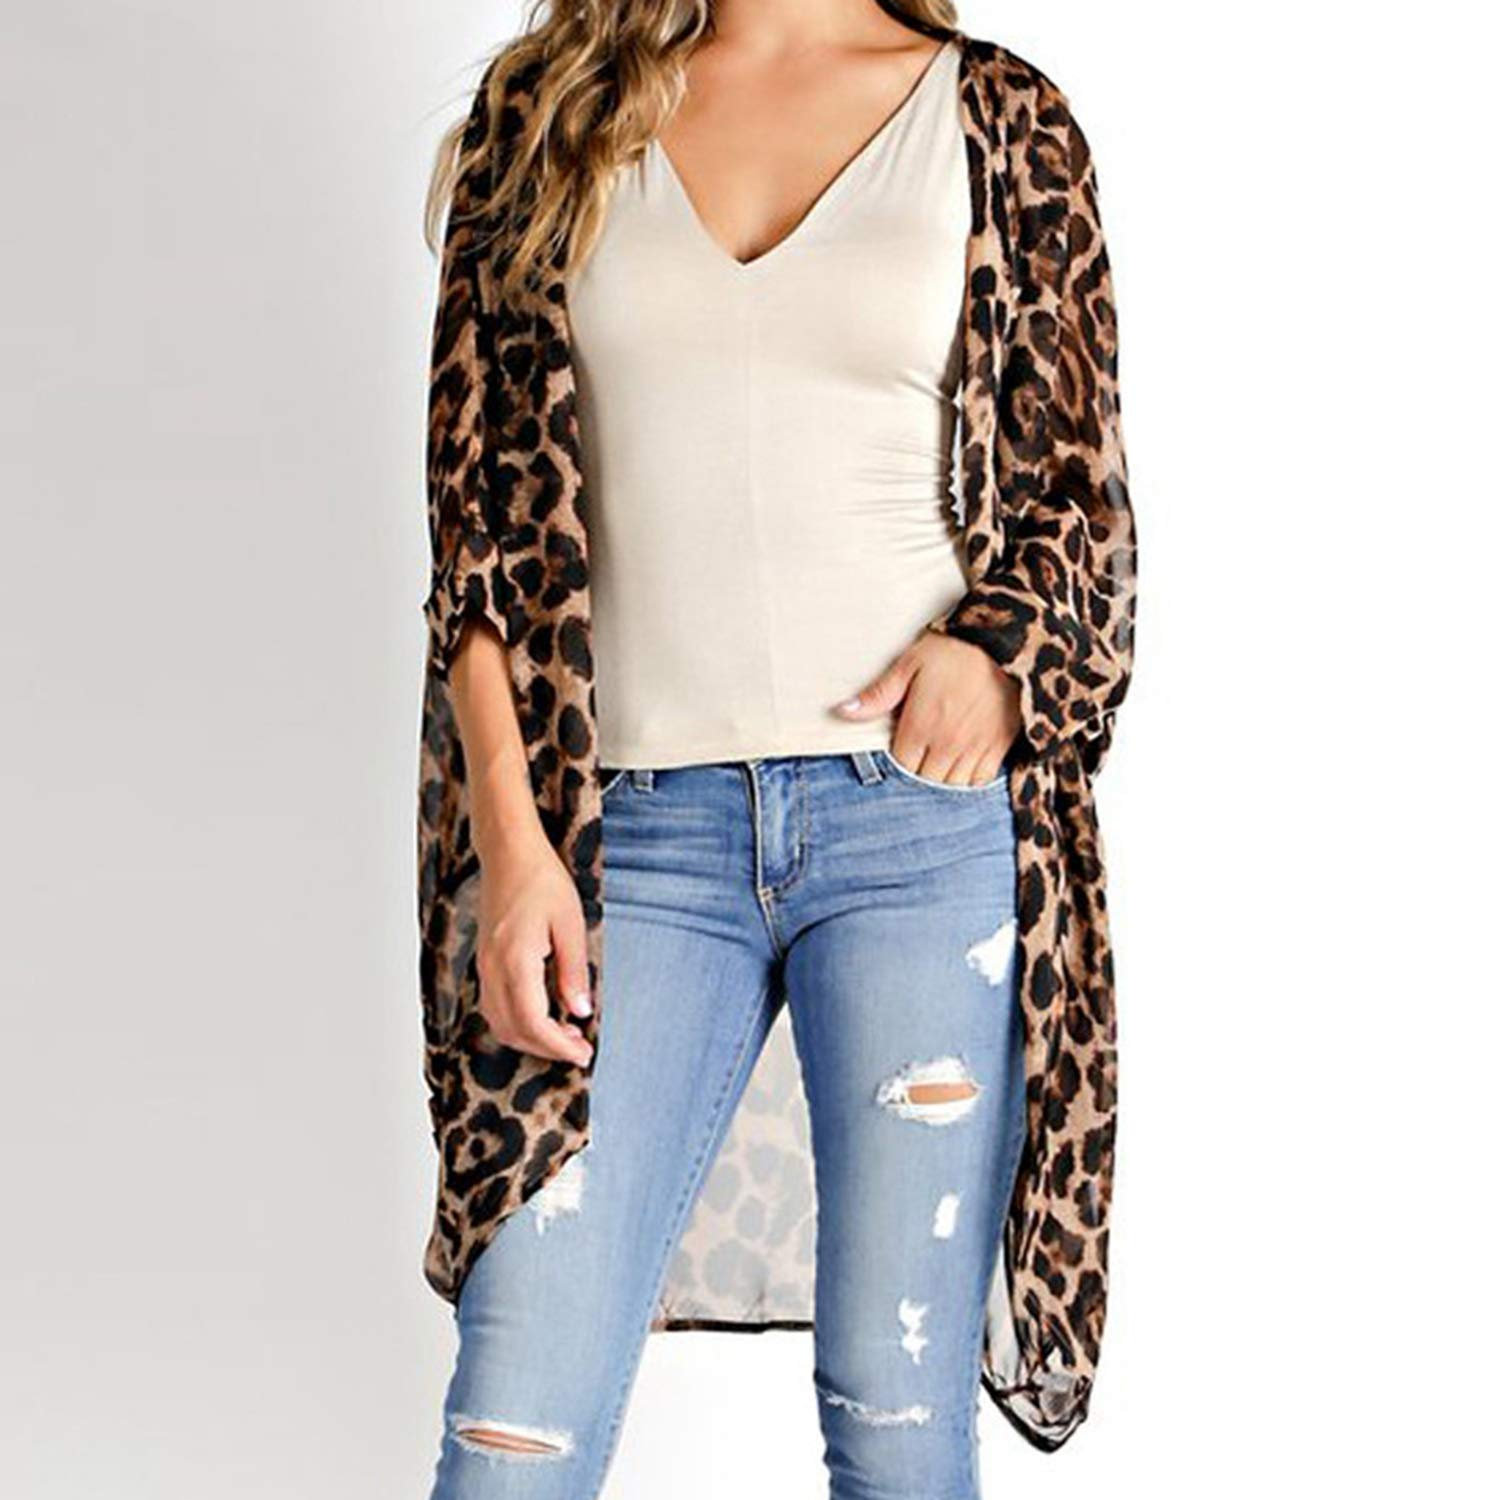 d10296cfdf76 Plus Size 5XL Women Long Vintage Cardigan Leopard Printed Blouse 2019 Casual  Loose Beach Cover Up Summer Top Shirt at Amazon Women's Clothing store: